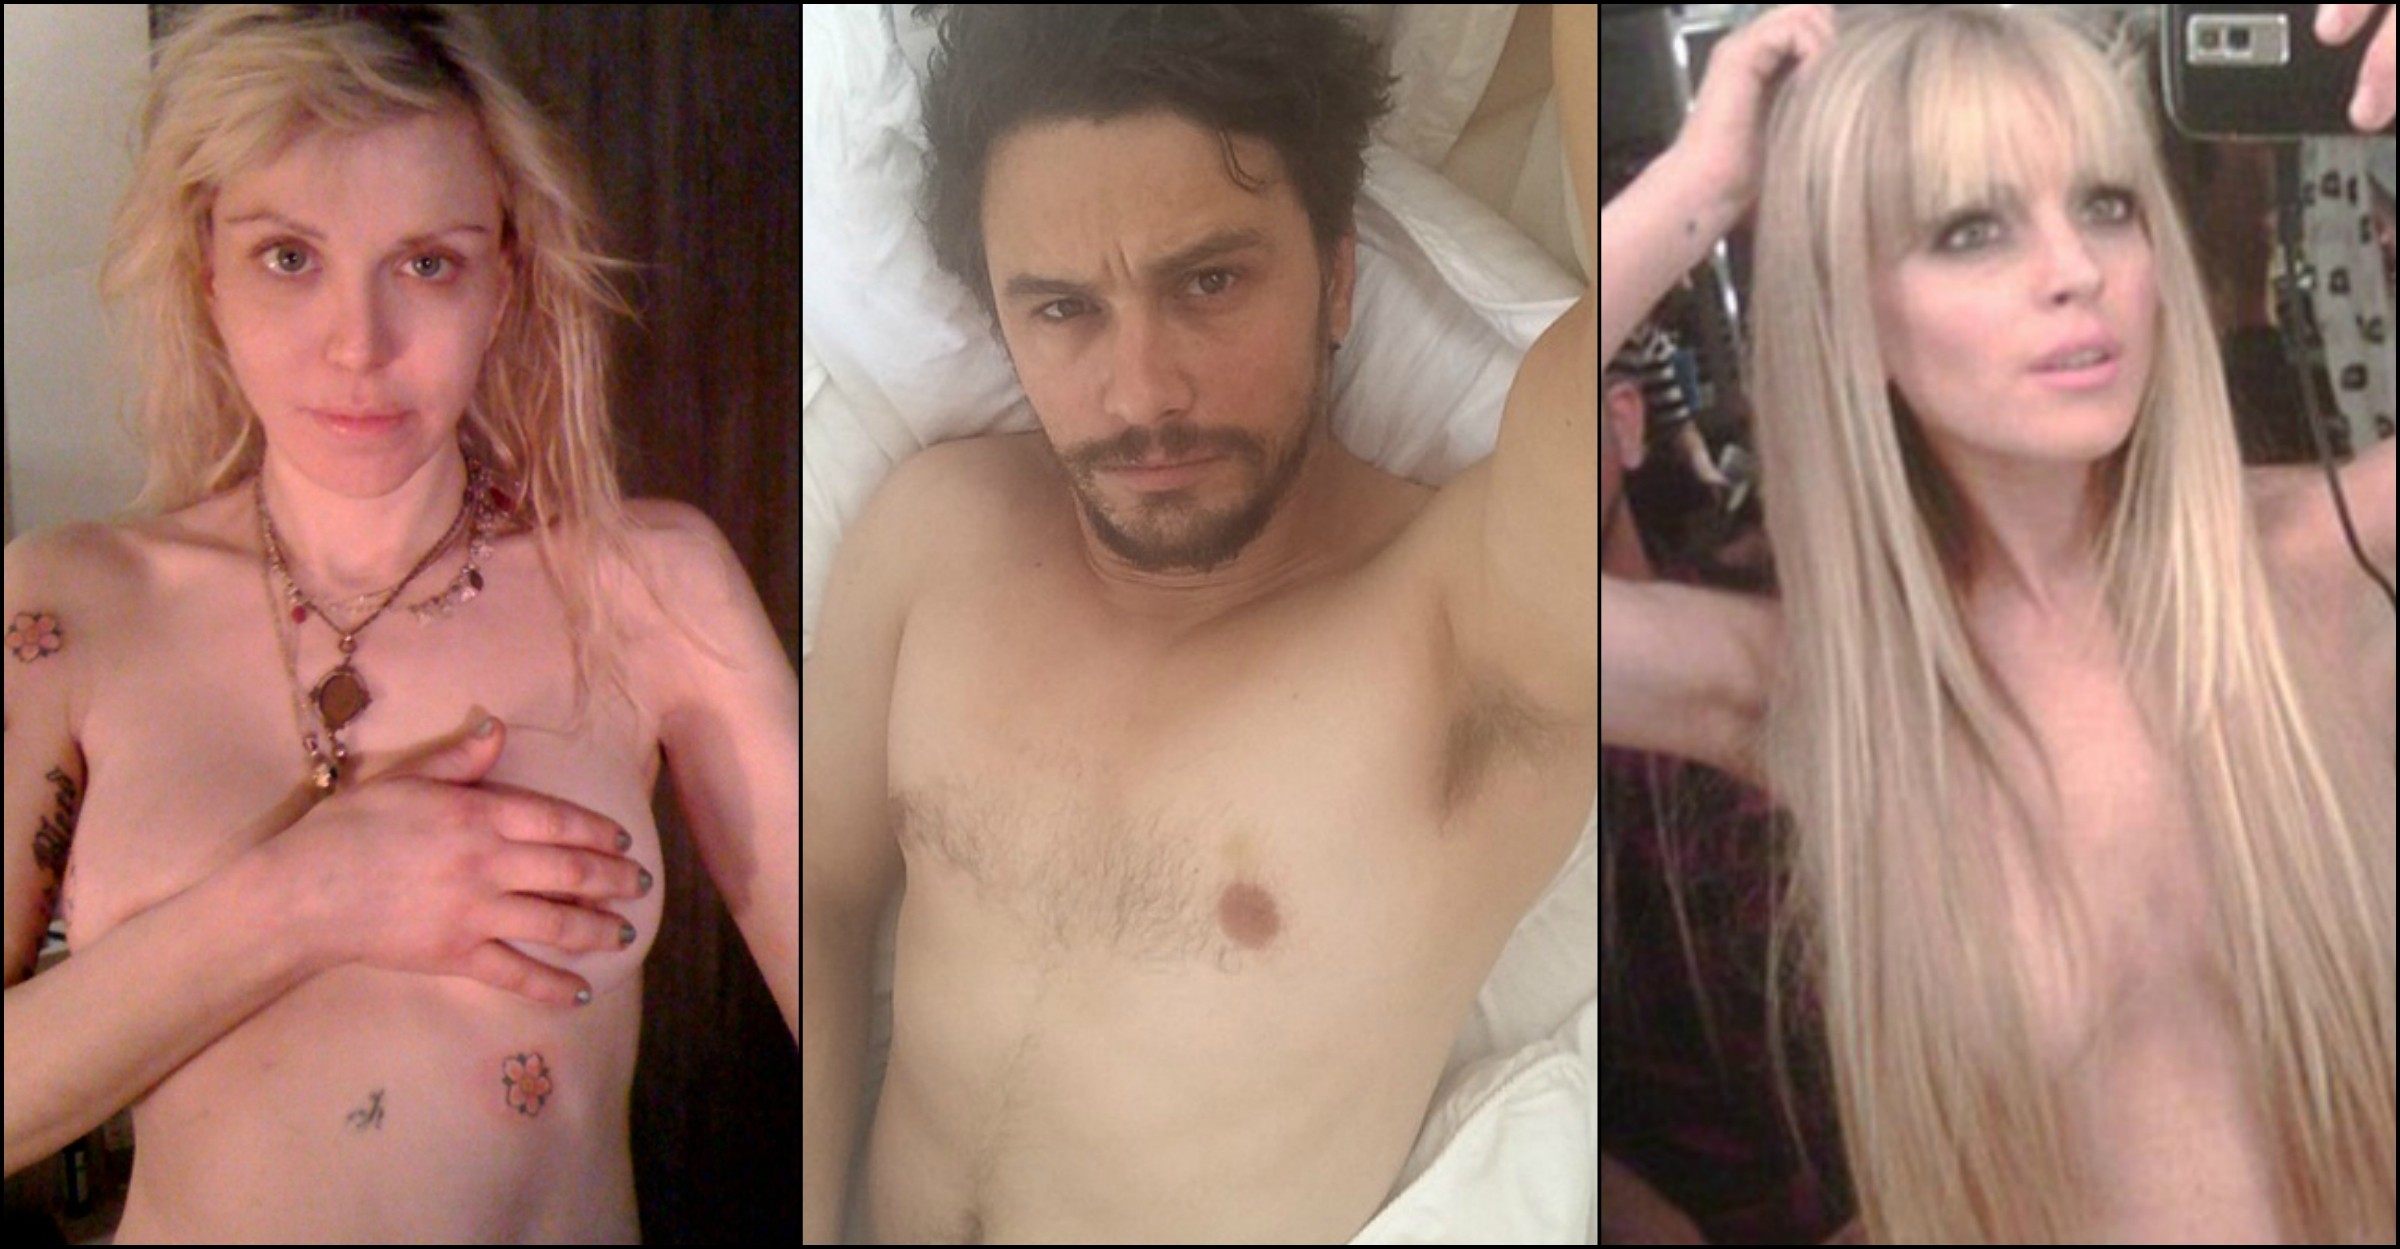 Courtney Love, James Franco e Lindsay Lohan dispensaram as roupas na hora de se clicarem. (Foto: Twitter e Instagram)